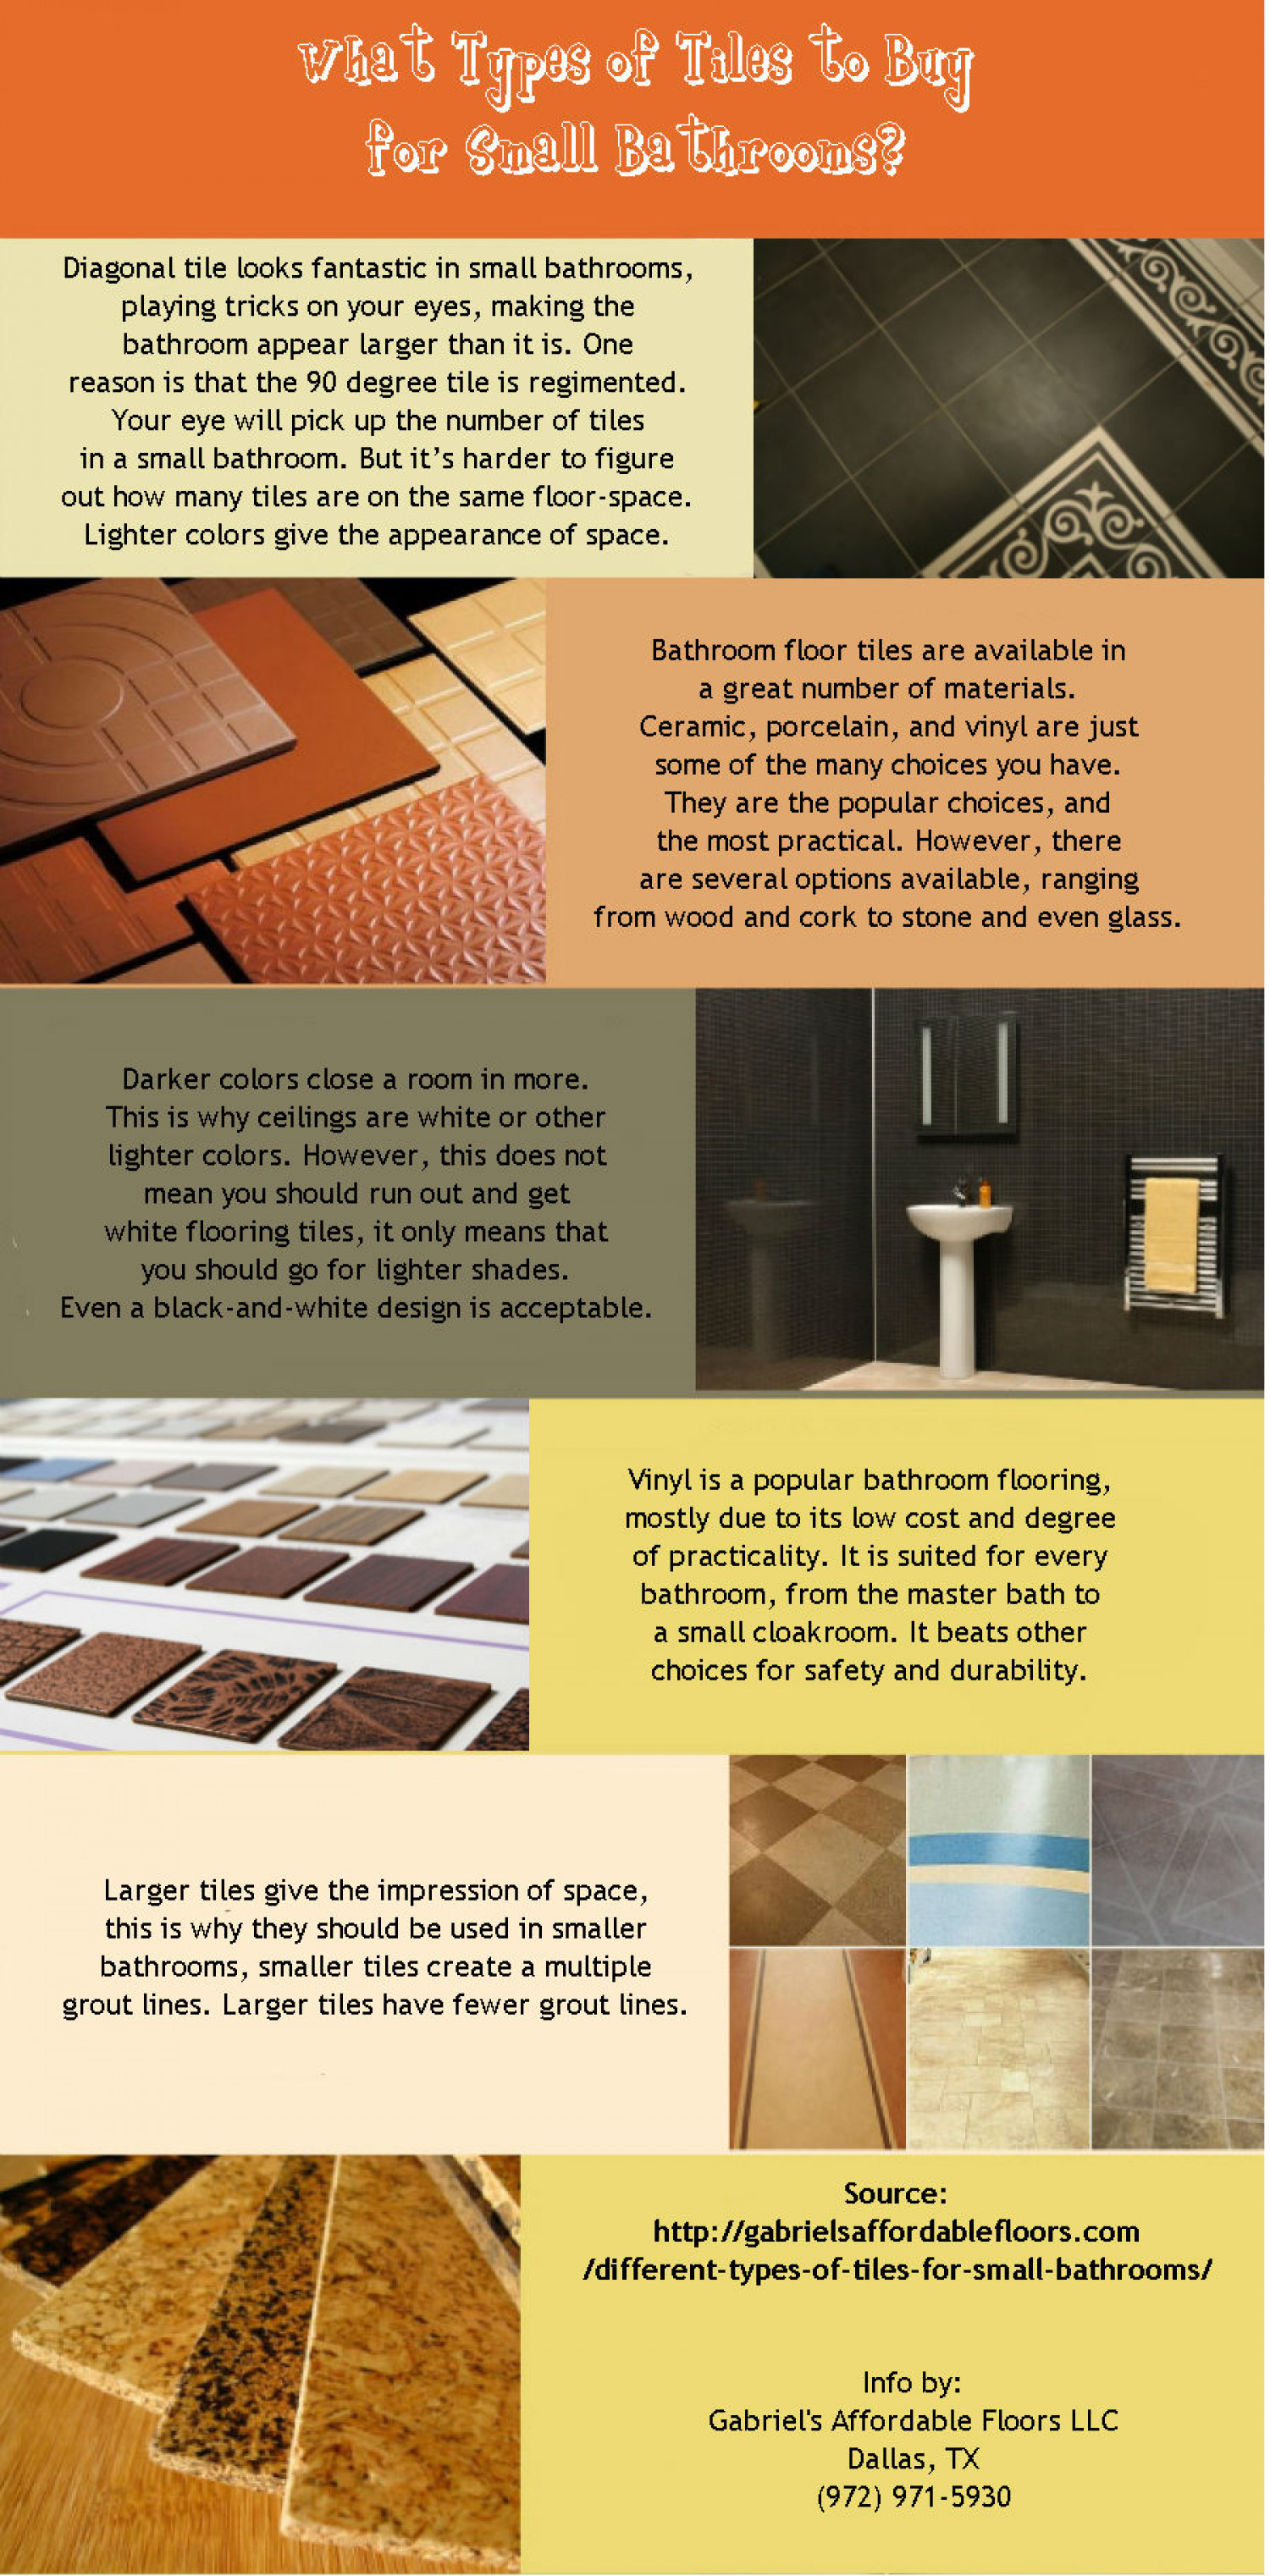 What types of tiles to buy for small bathroom visual what types of tiles to buy for small bathroom infographic dailygadgetfo Choice Image